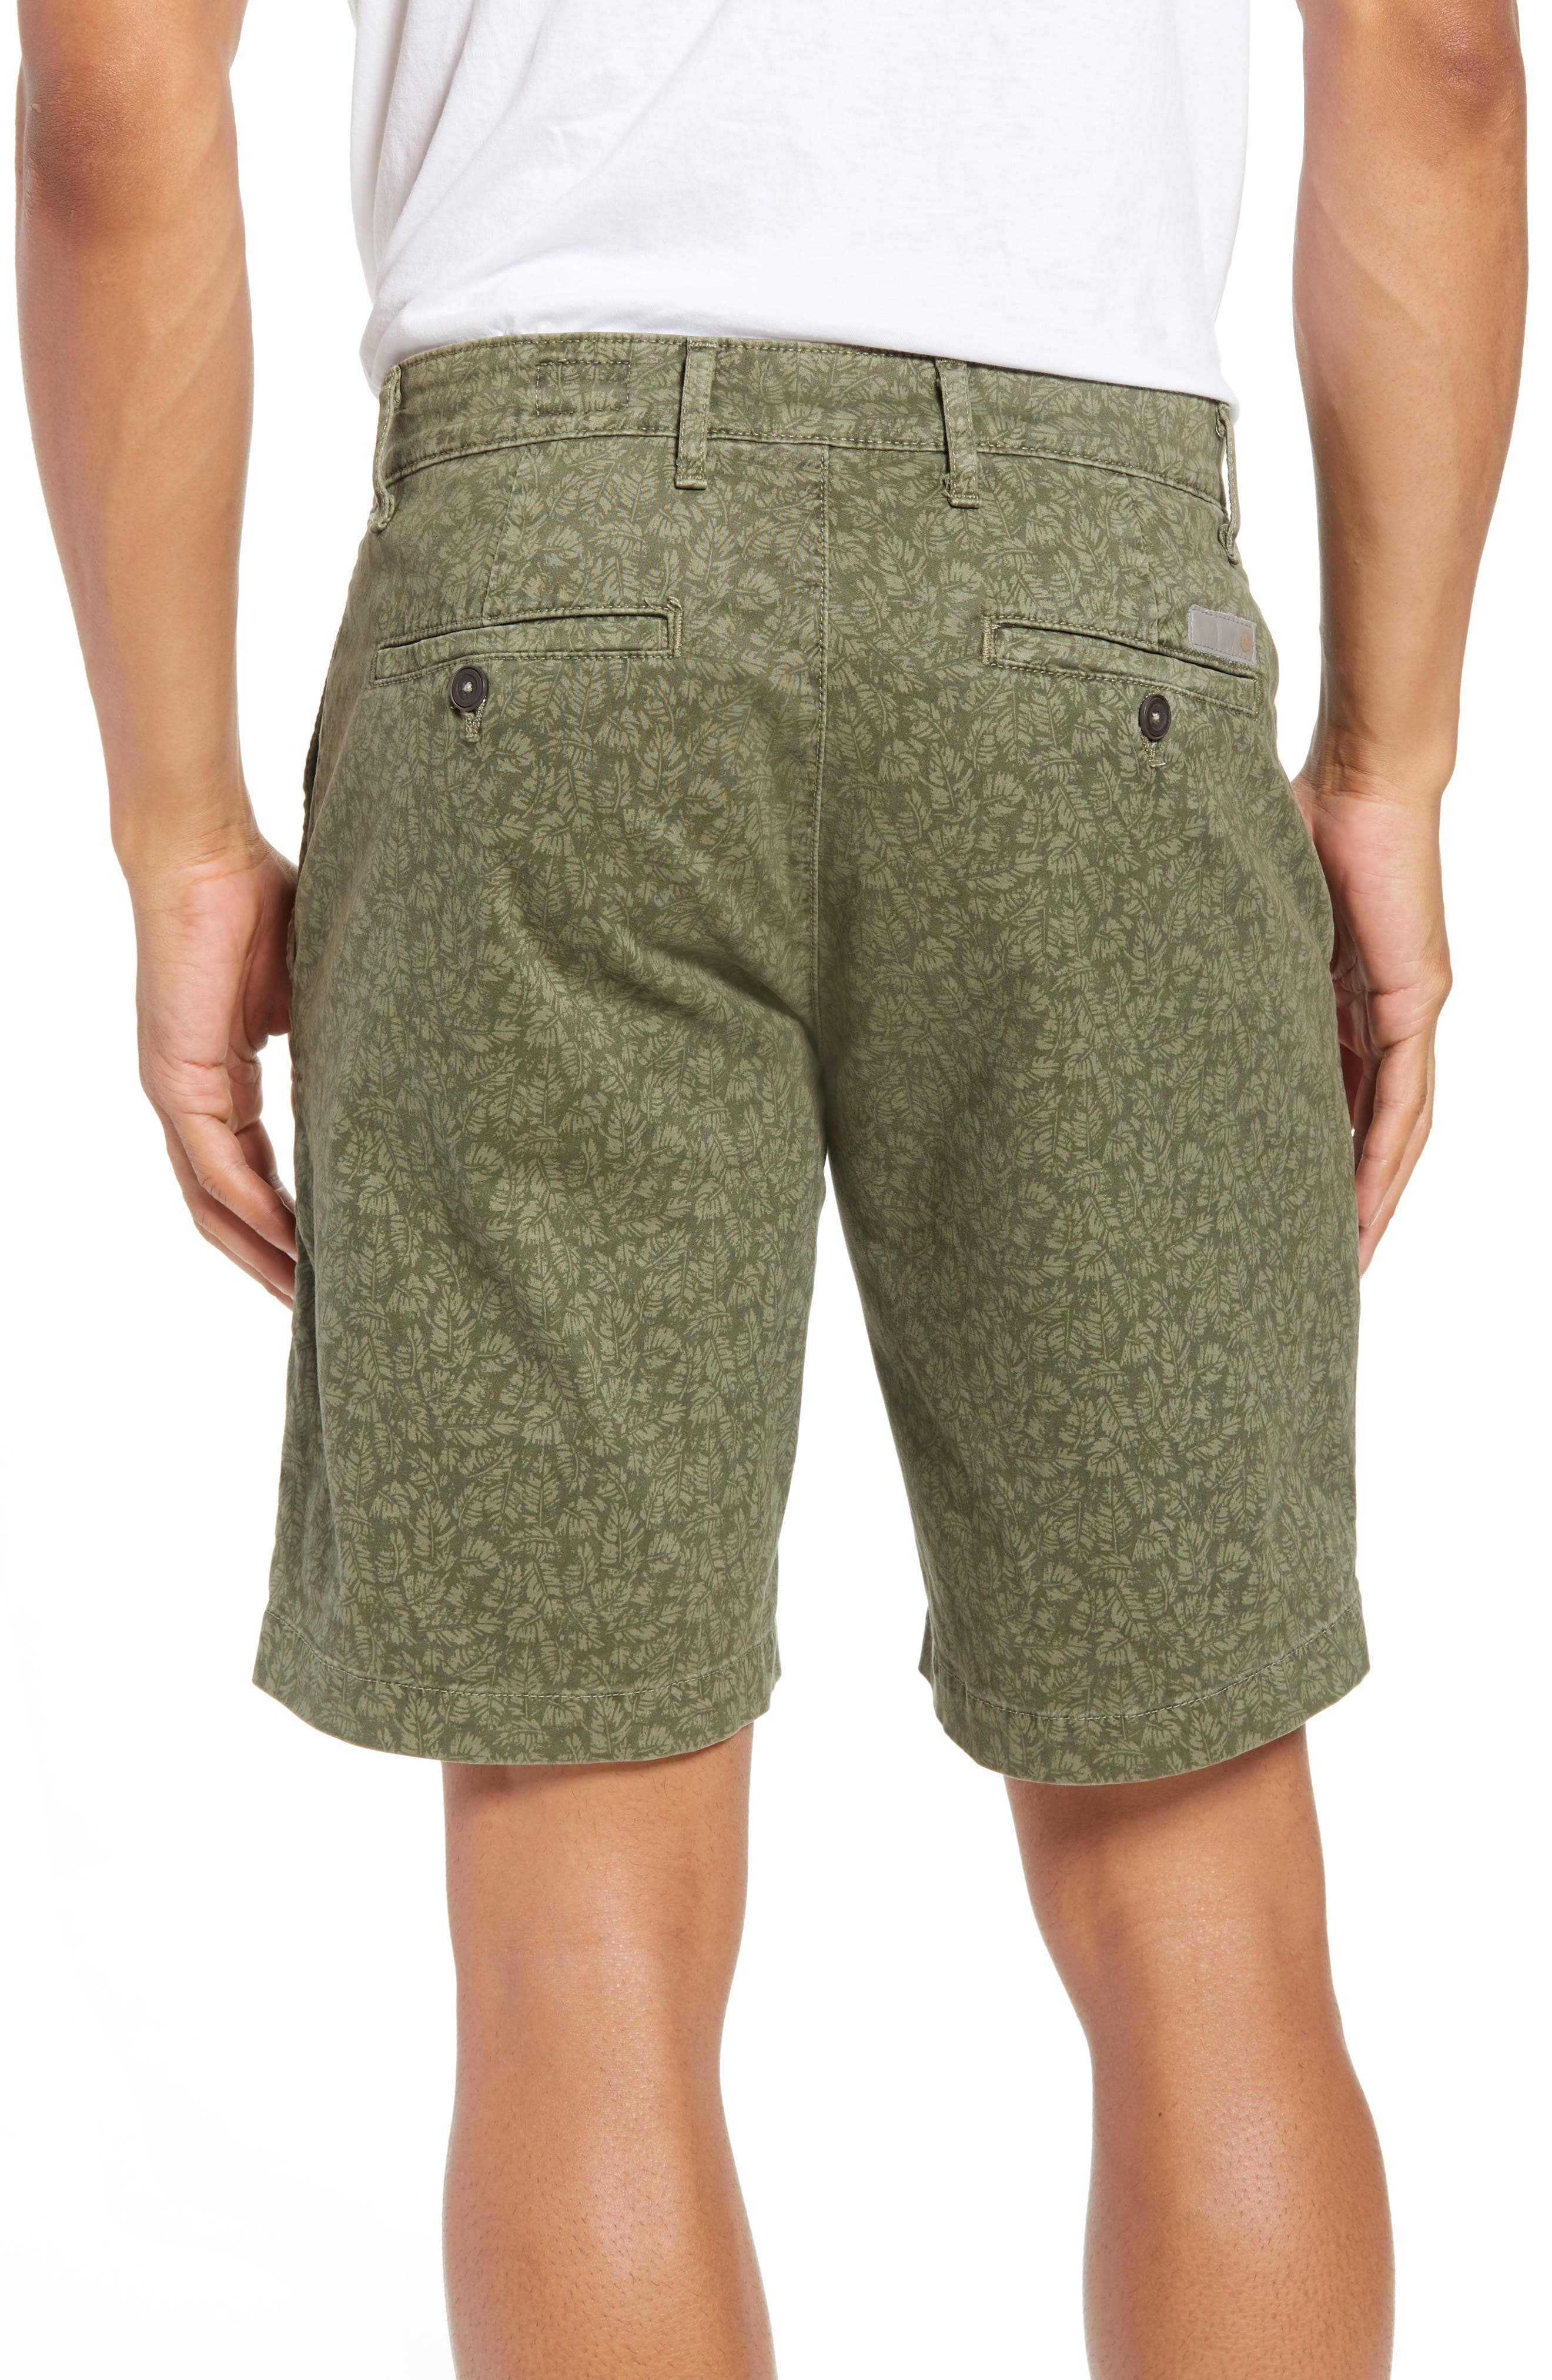 Lotas Slim Fit Stretch Cotton Shorts,                             Alternate thumbnail 2, color,                             Sulfur Dry Cypress